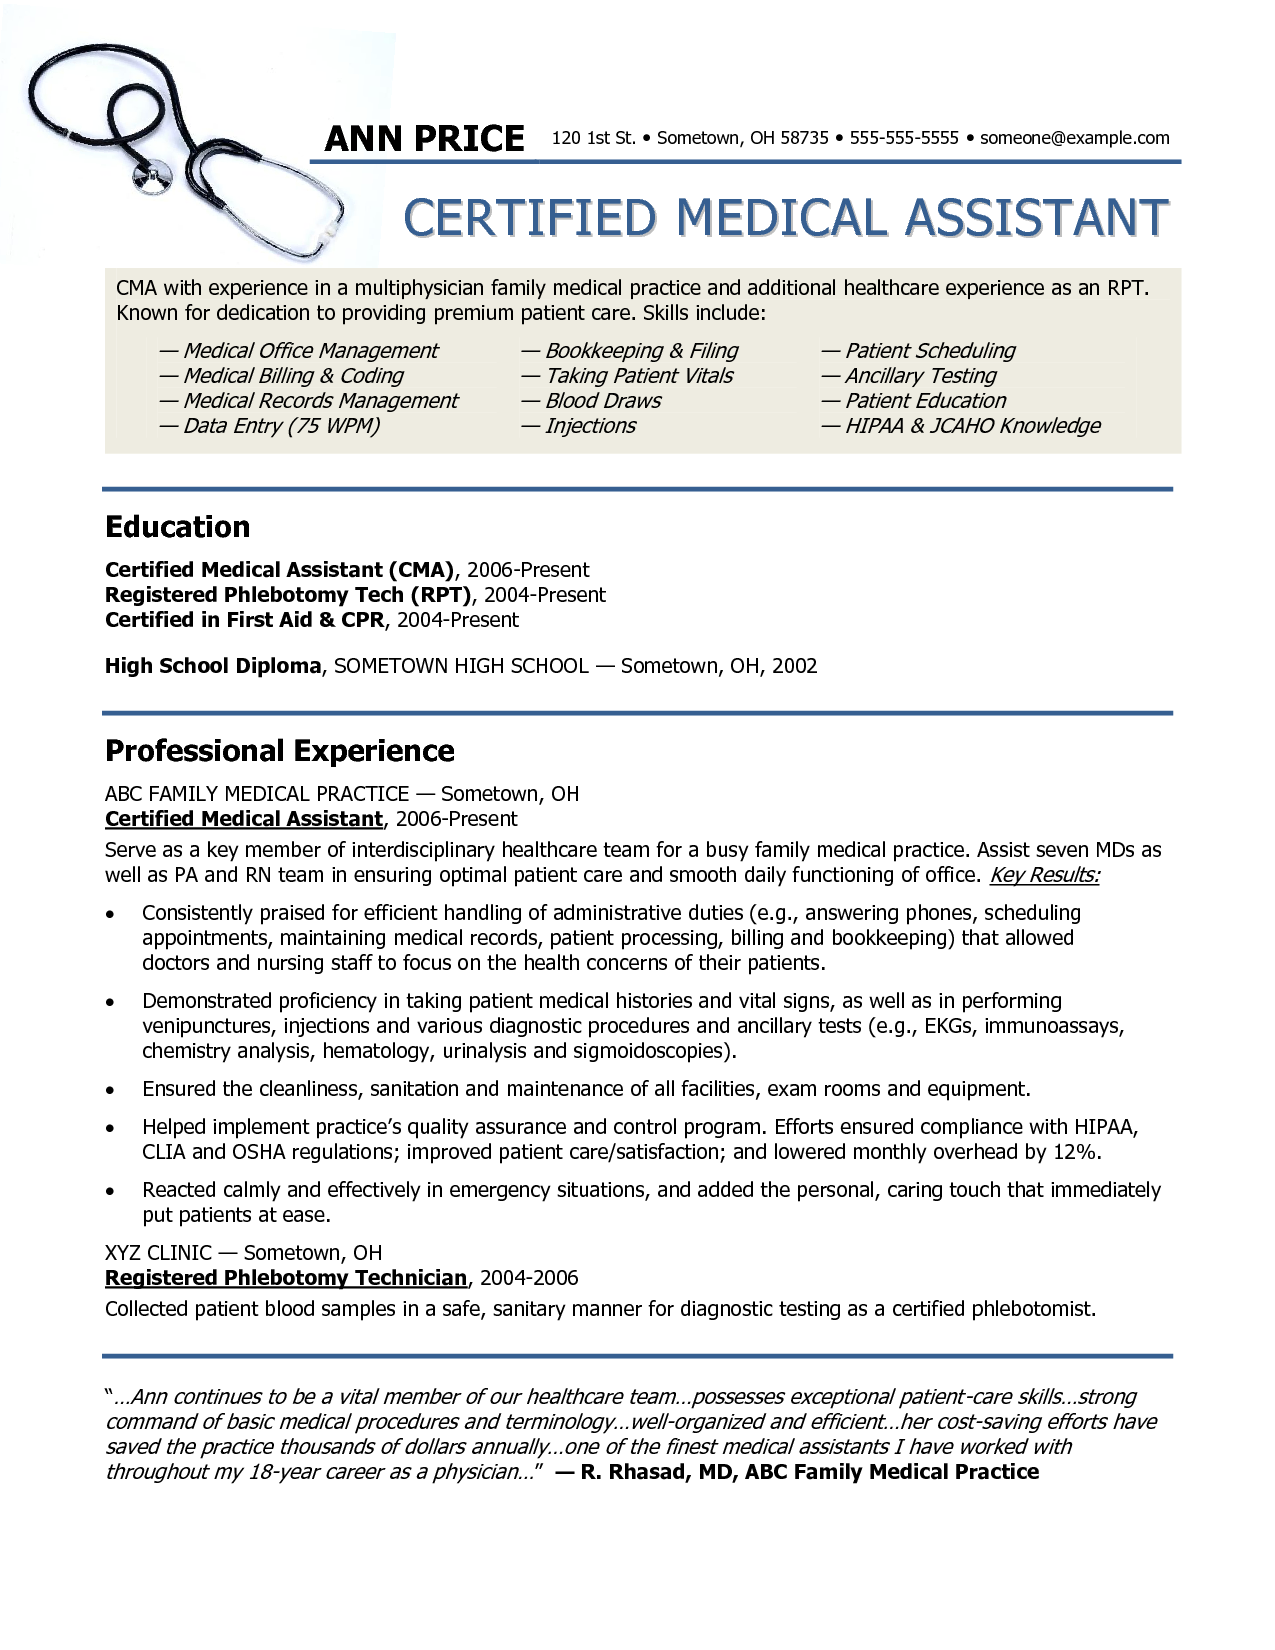 resume examples example of medical assistant resume regular medical assistant - Sample Resume Medical Assistant